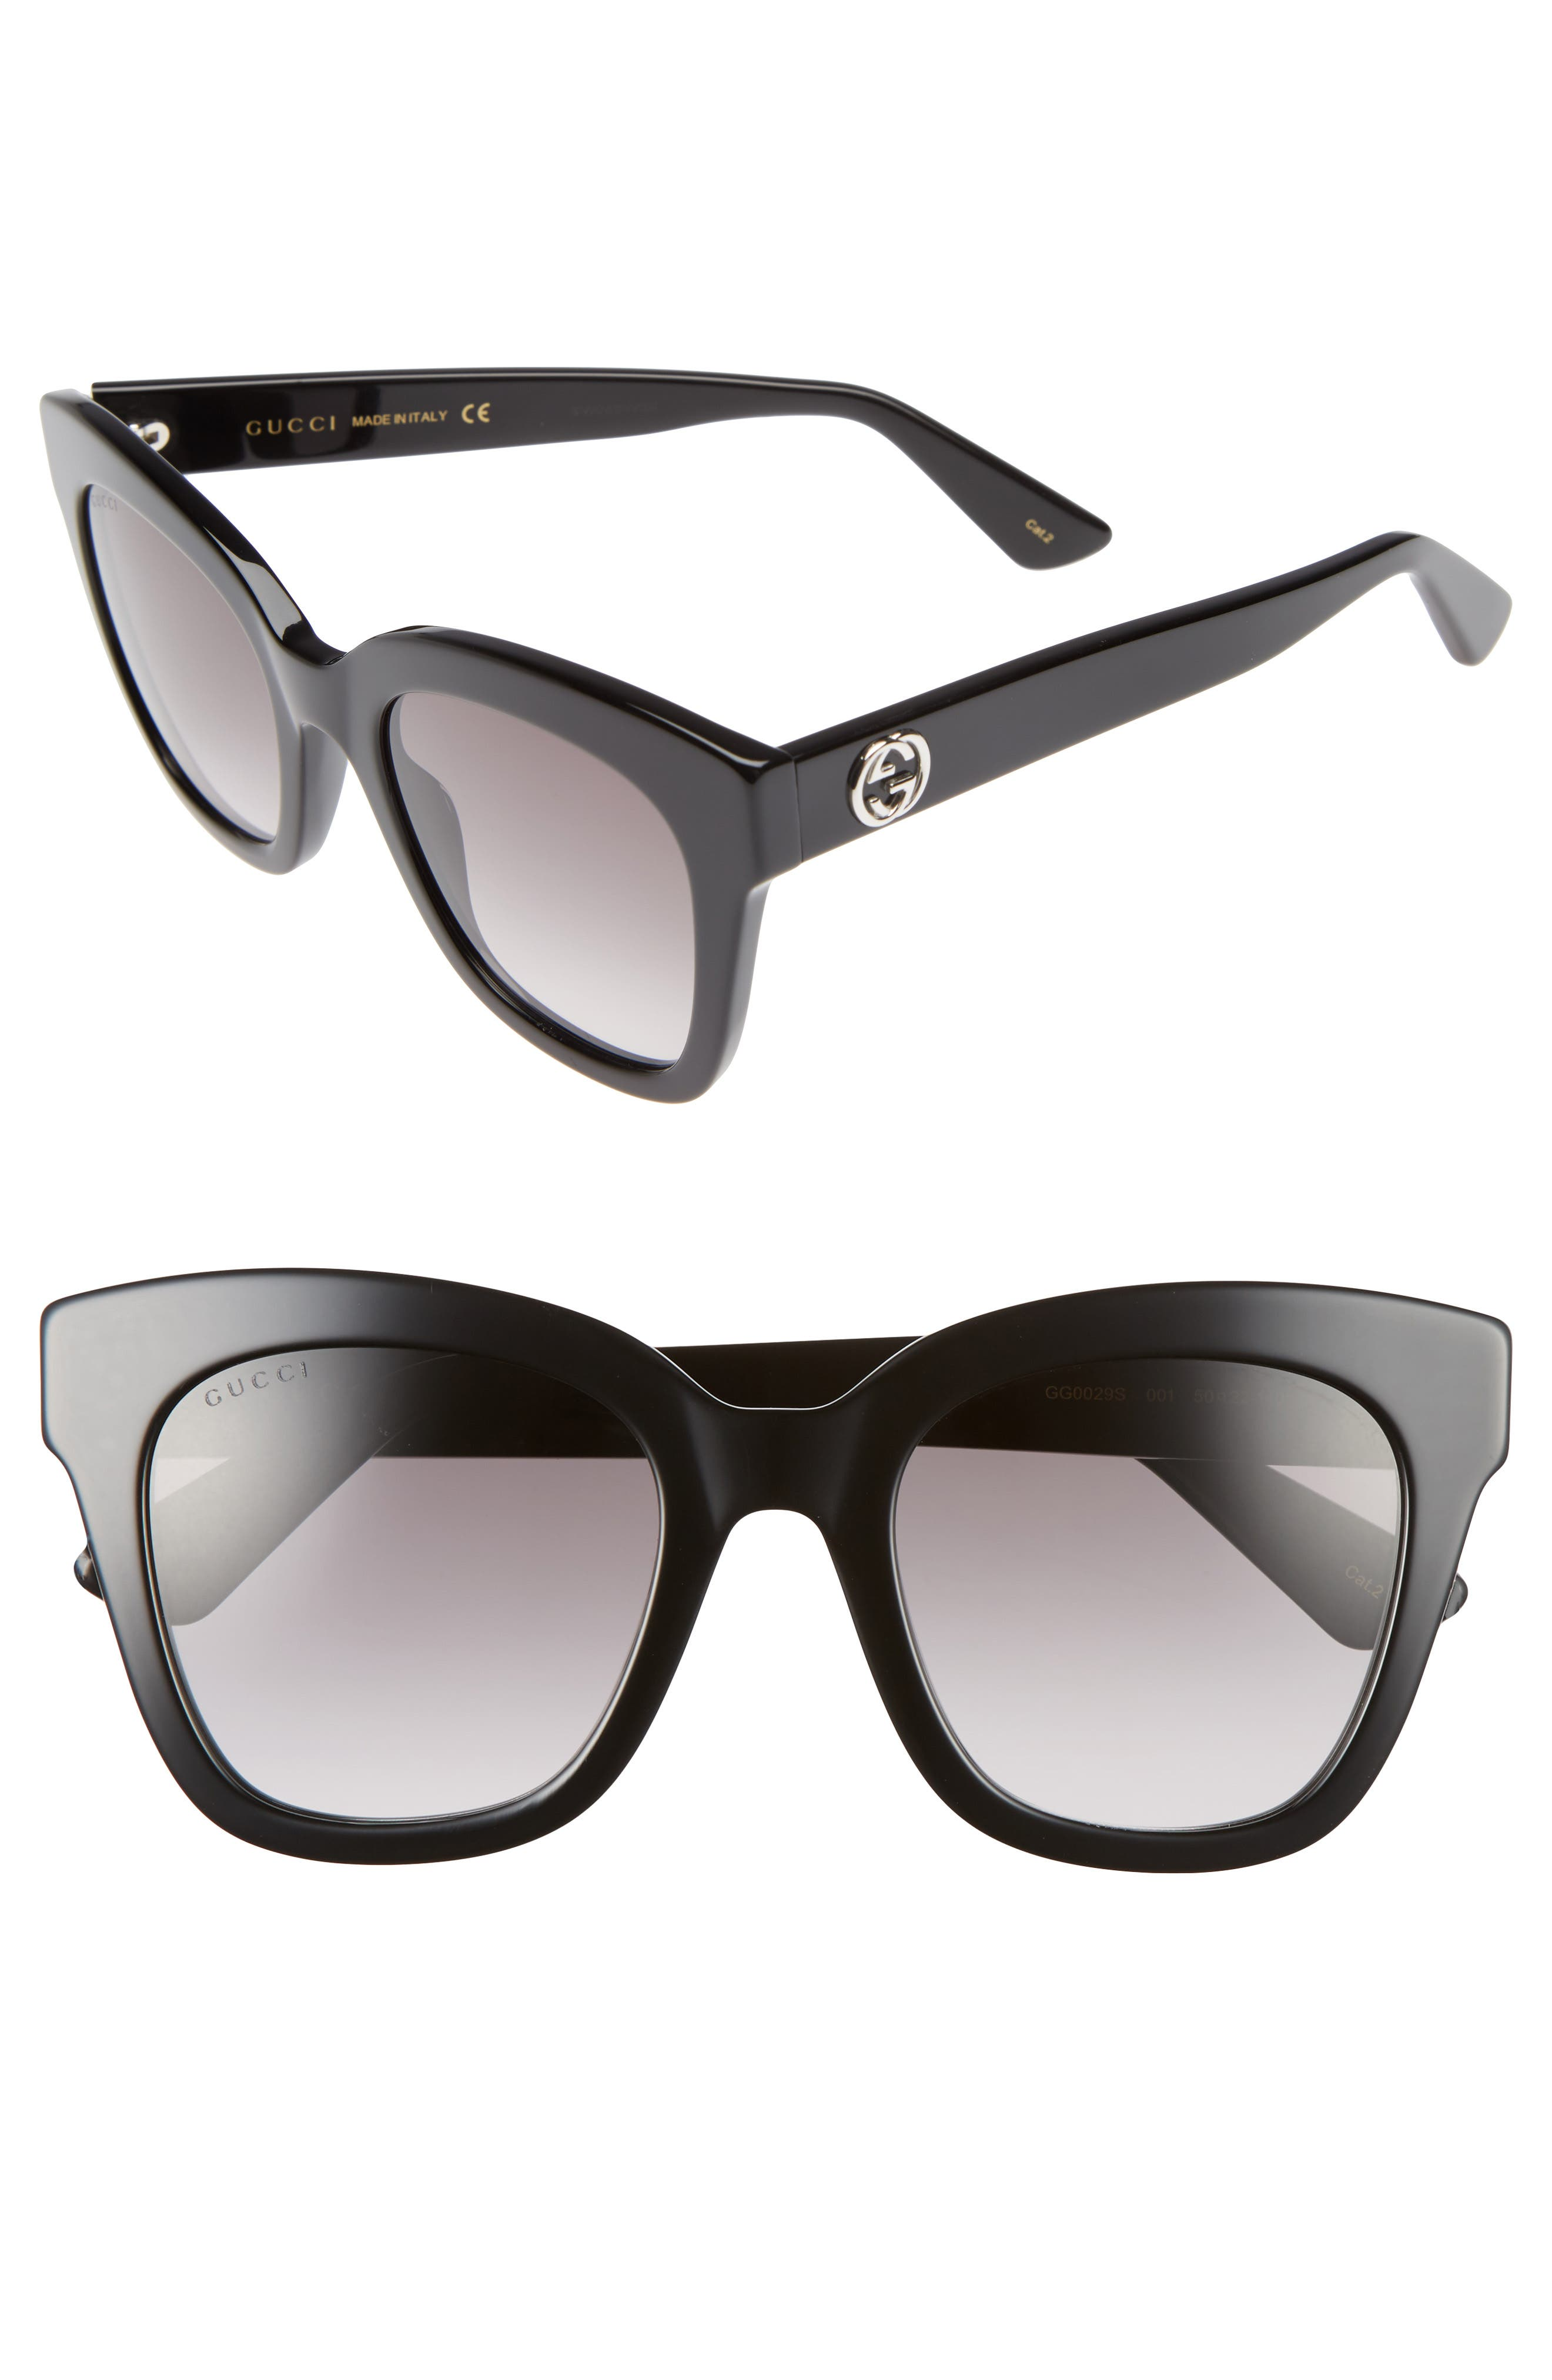 50mm Cat Eye Sunglasses,                             Alternate thumbnail 2, color,                             001